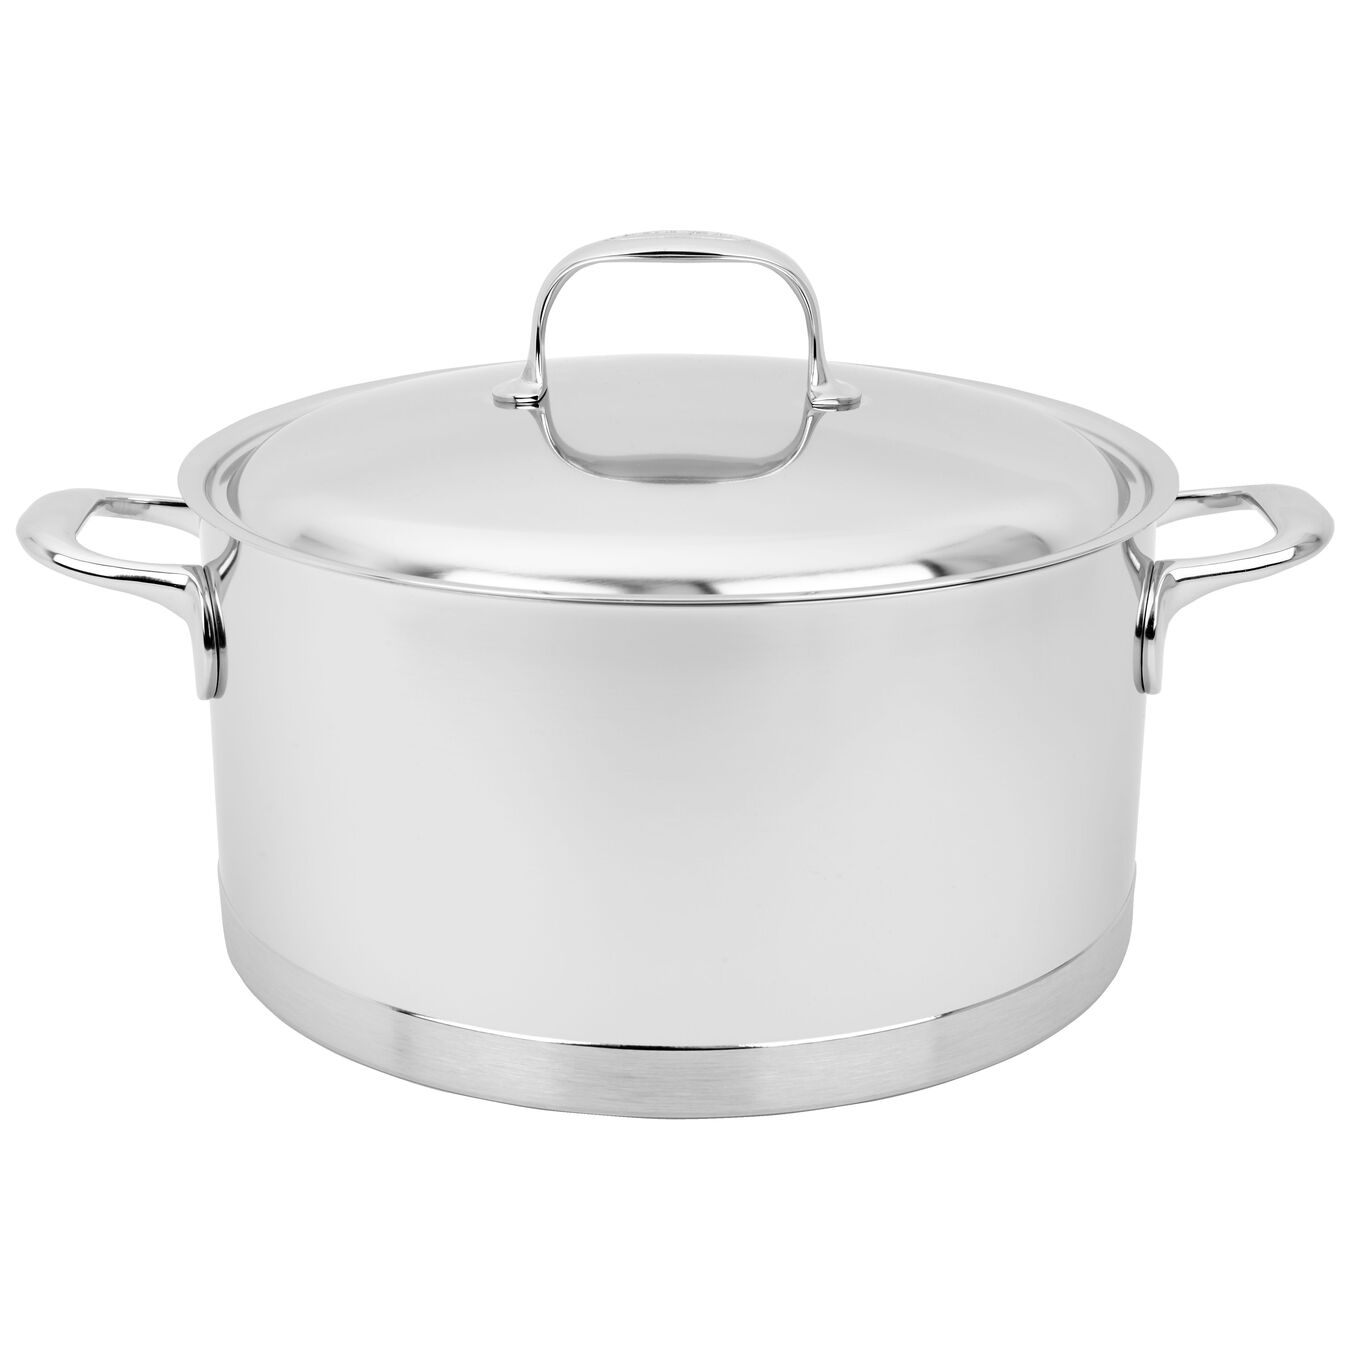 8.9-qt Stainless Steel Dutch Oven,,large 1